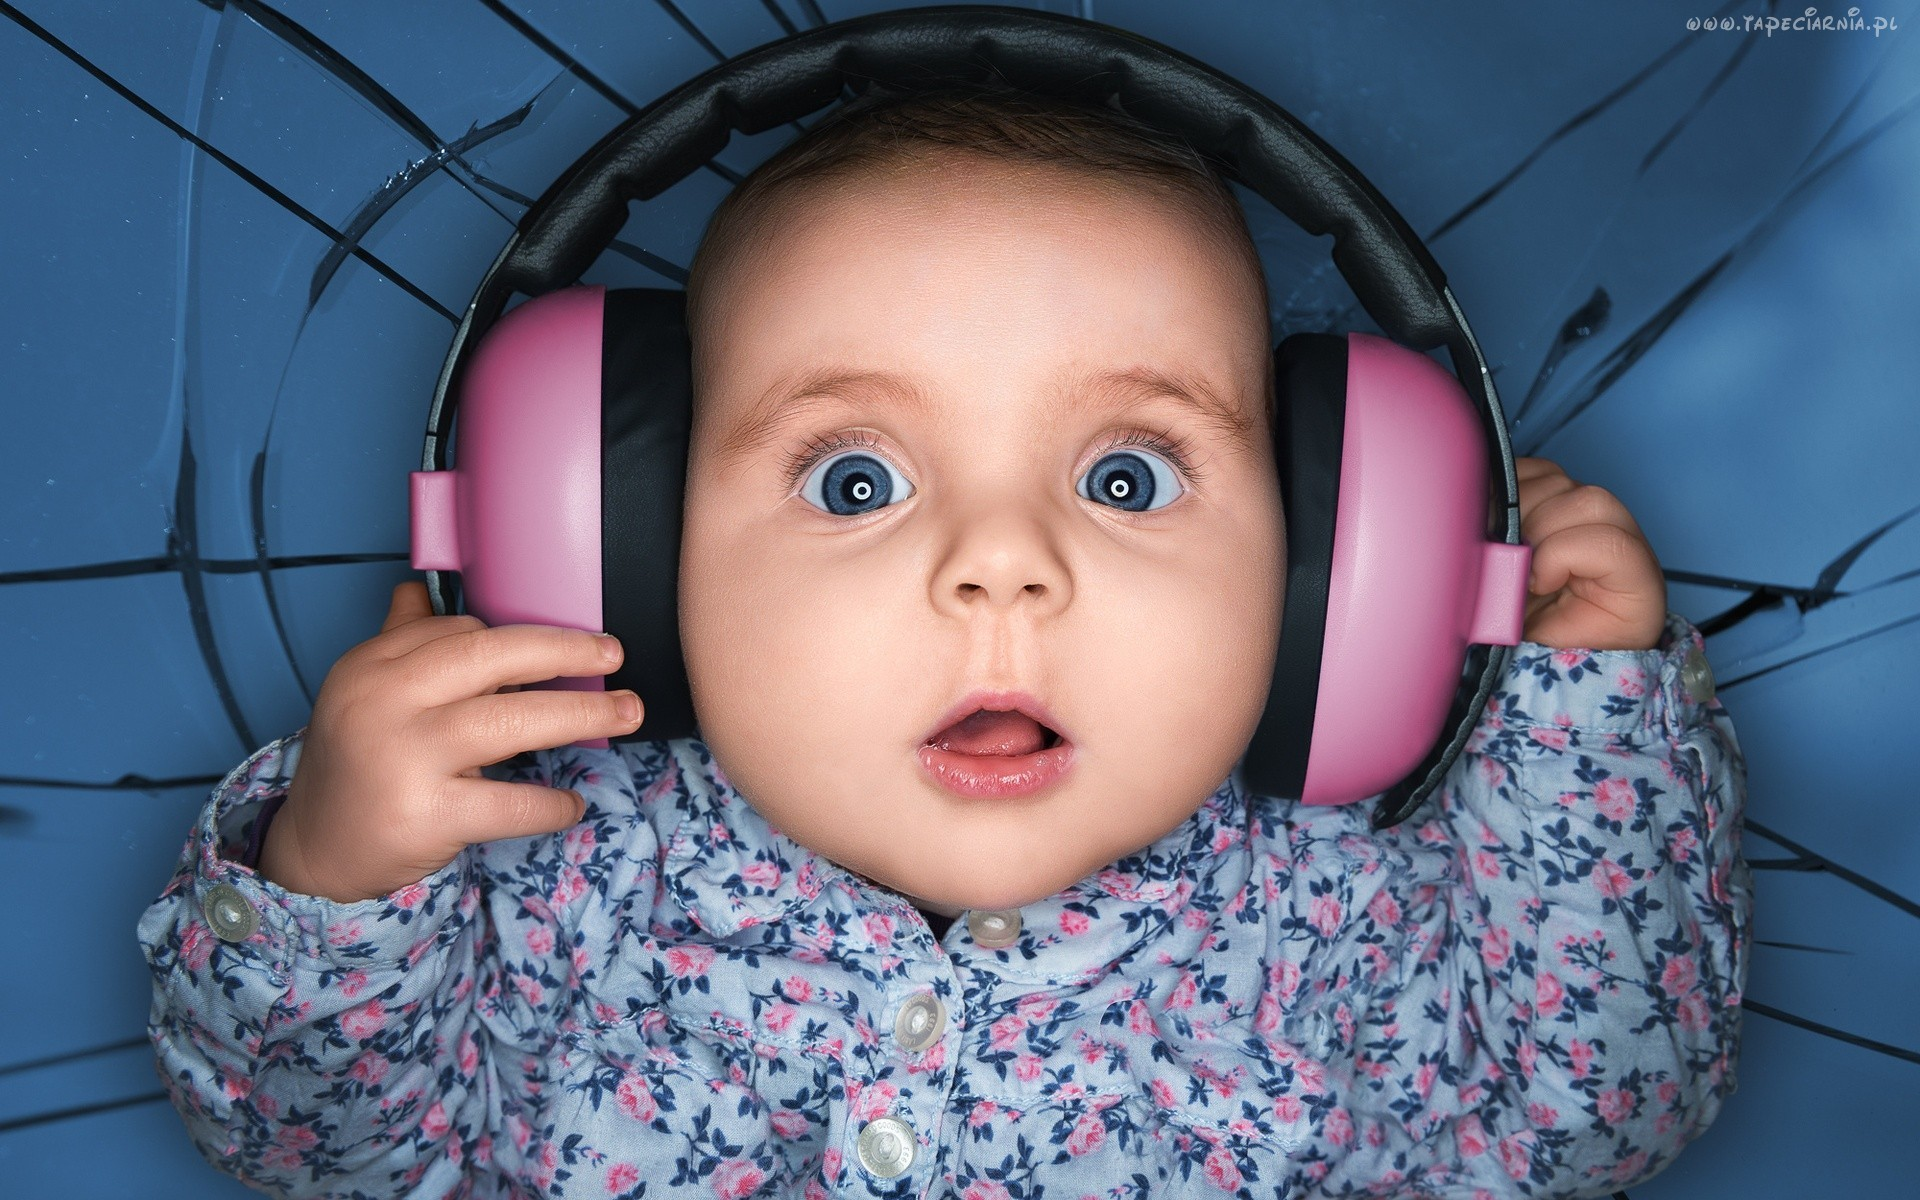 People 1920x1200 headphones baby humor